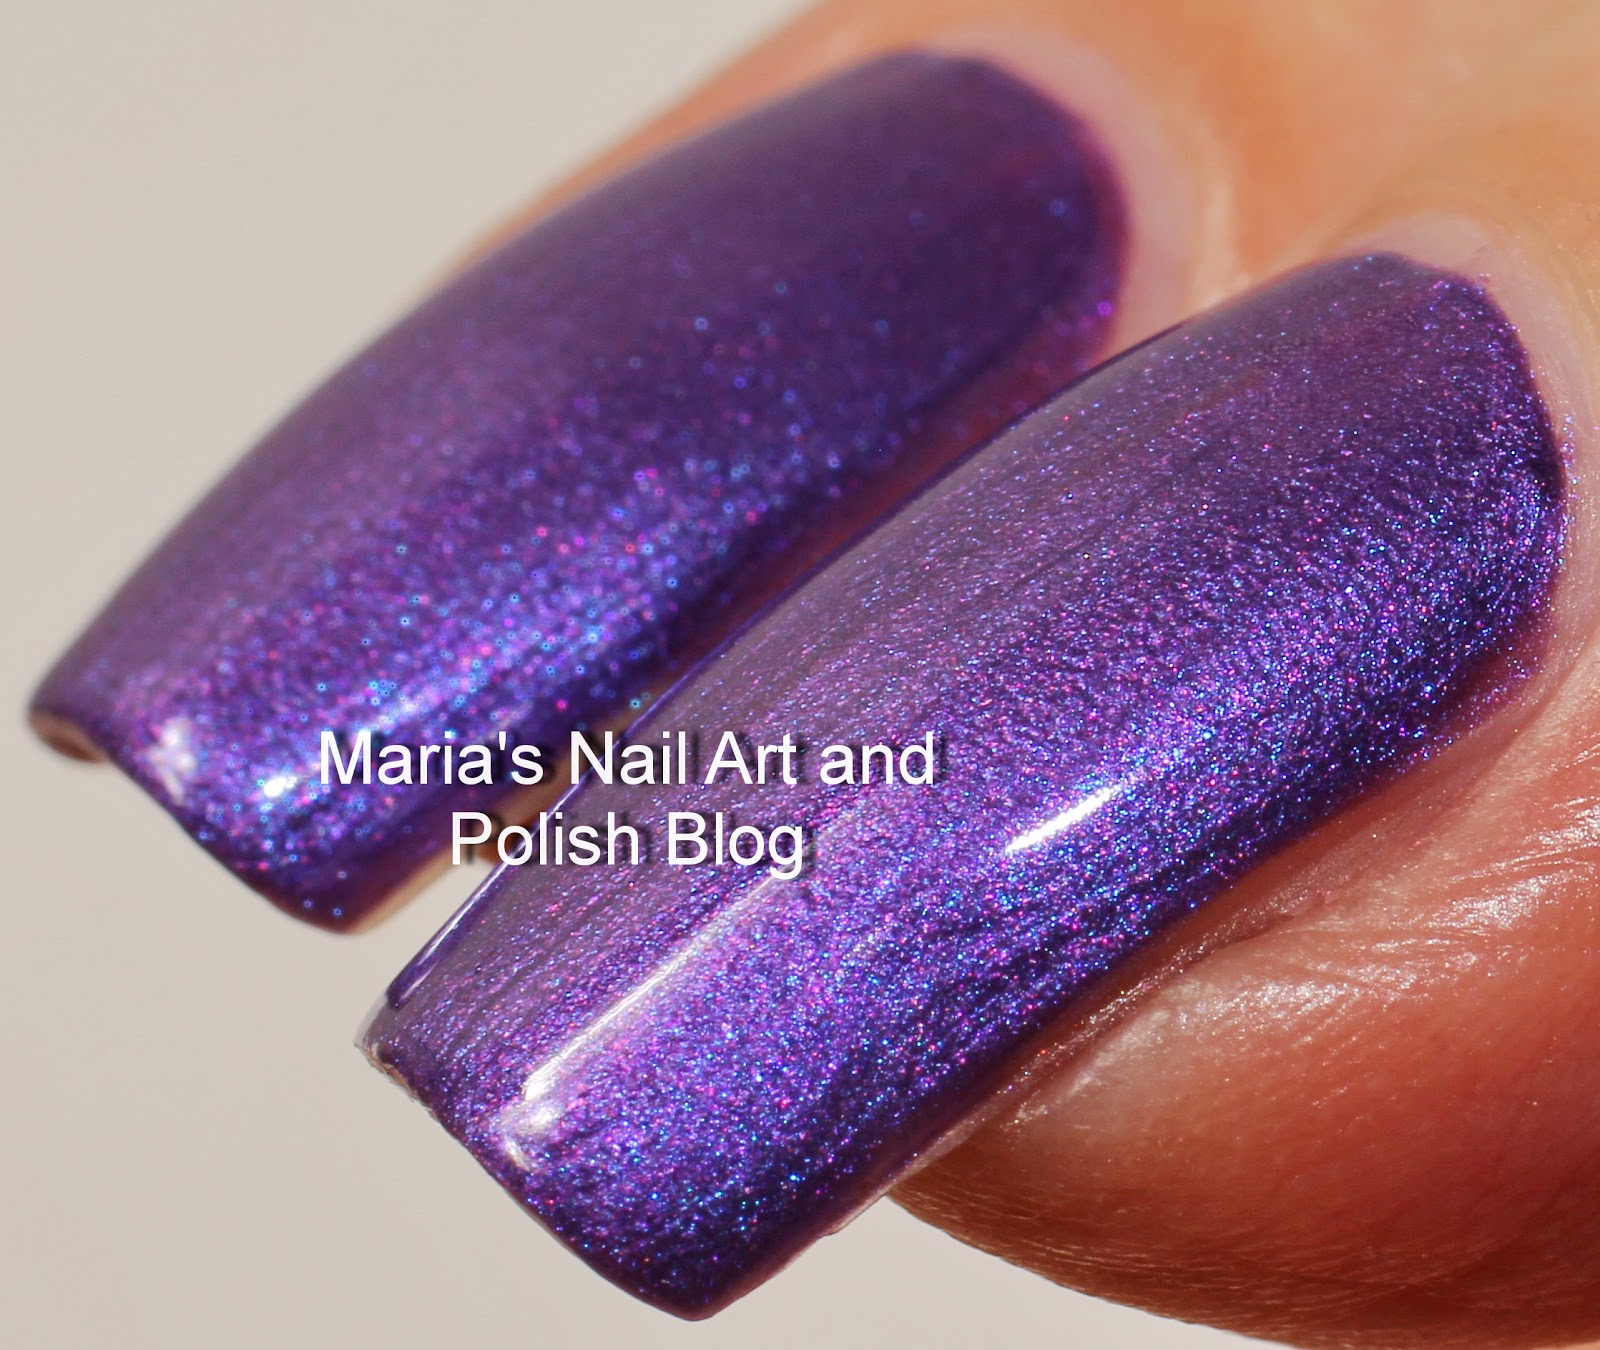 Marias Nail Art and Polish Blog: Swatch spam: Jessica, Astor, Yes ...